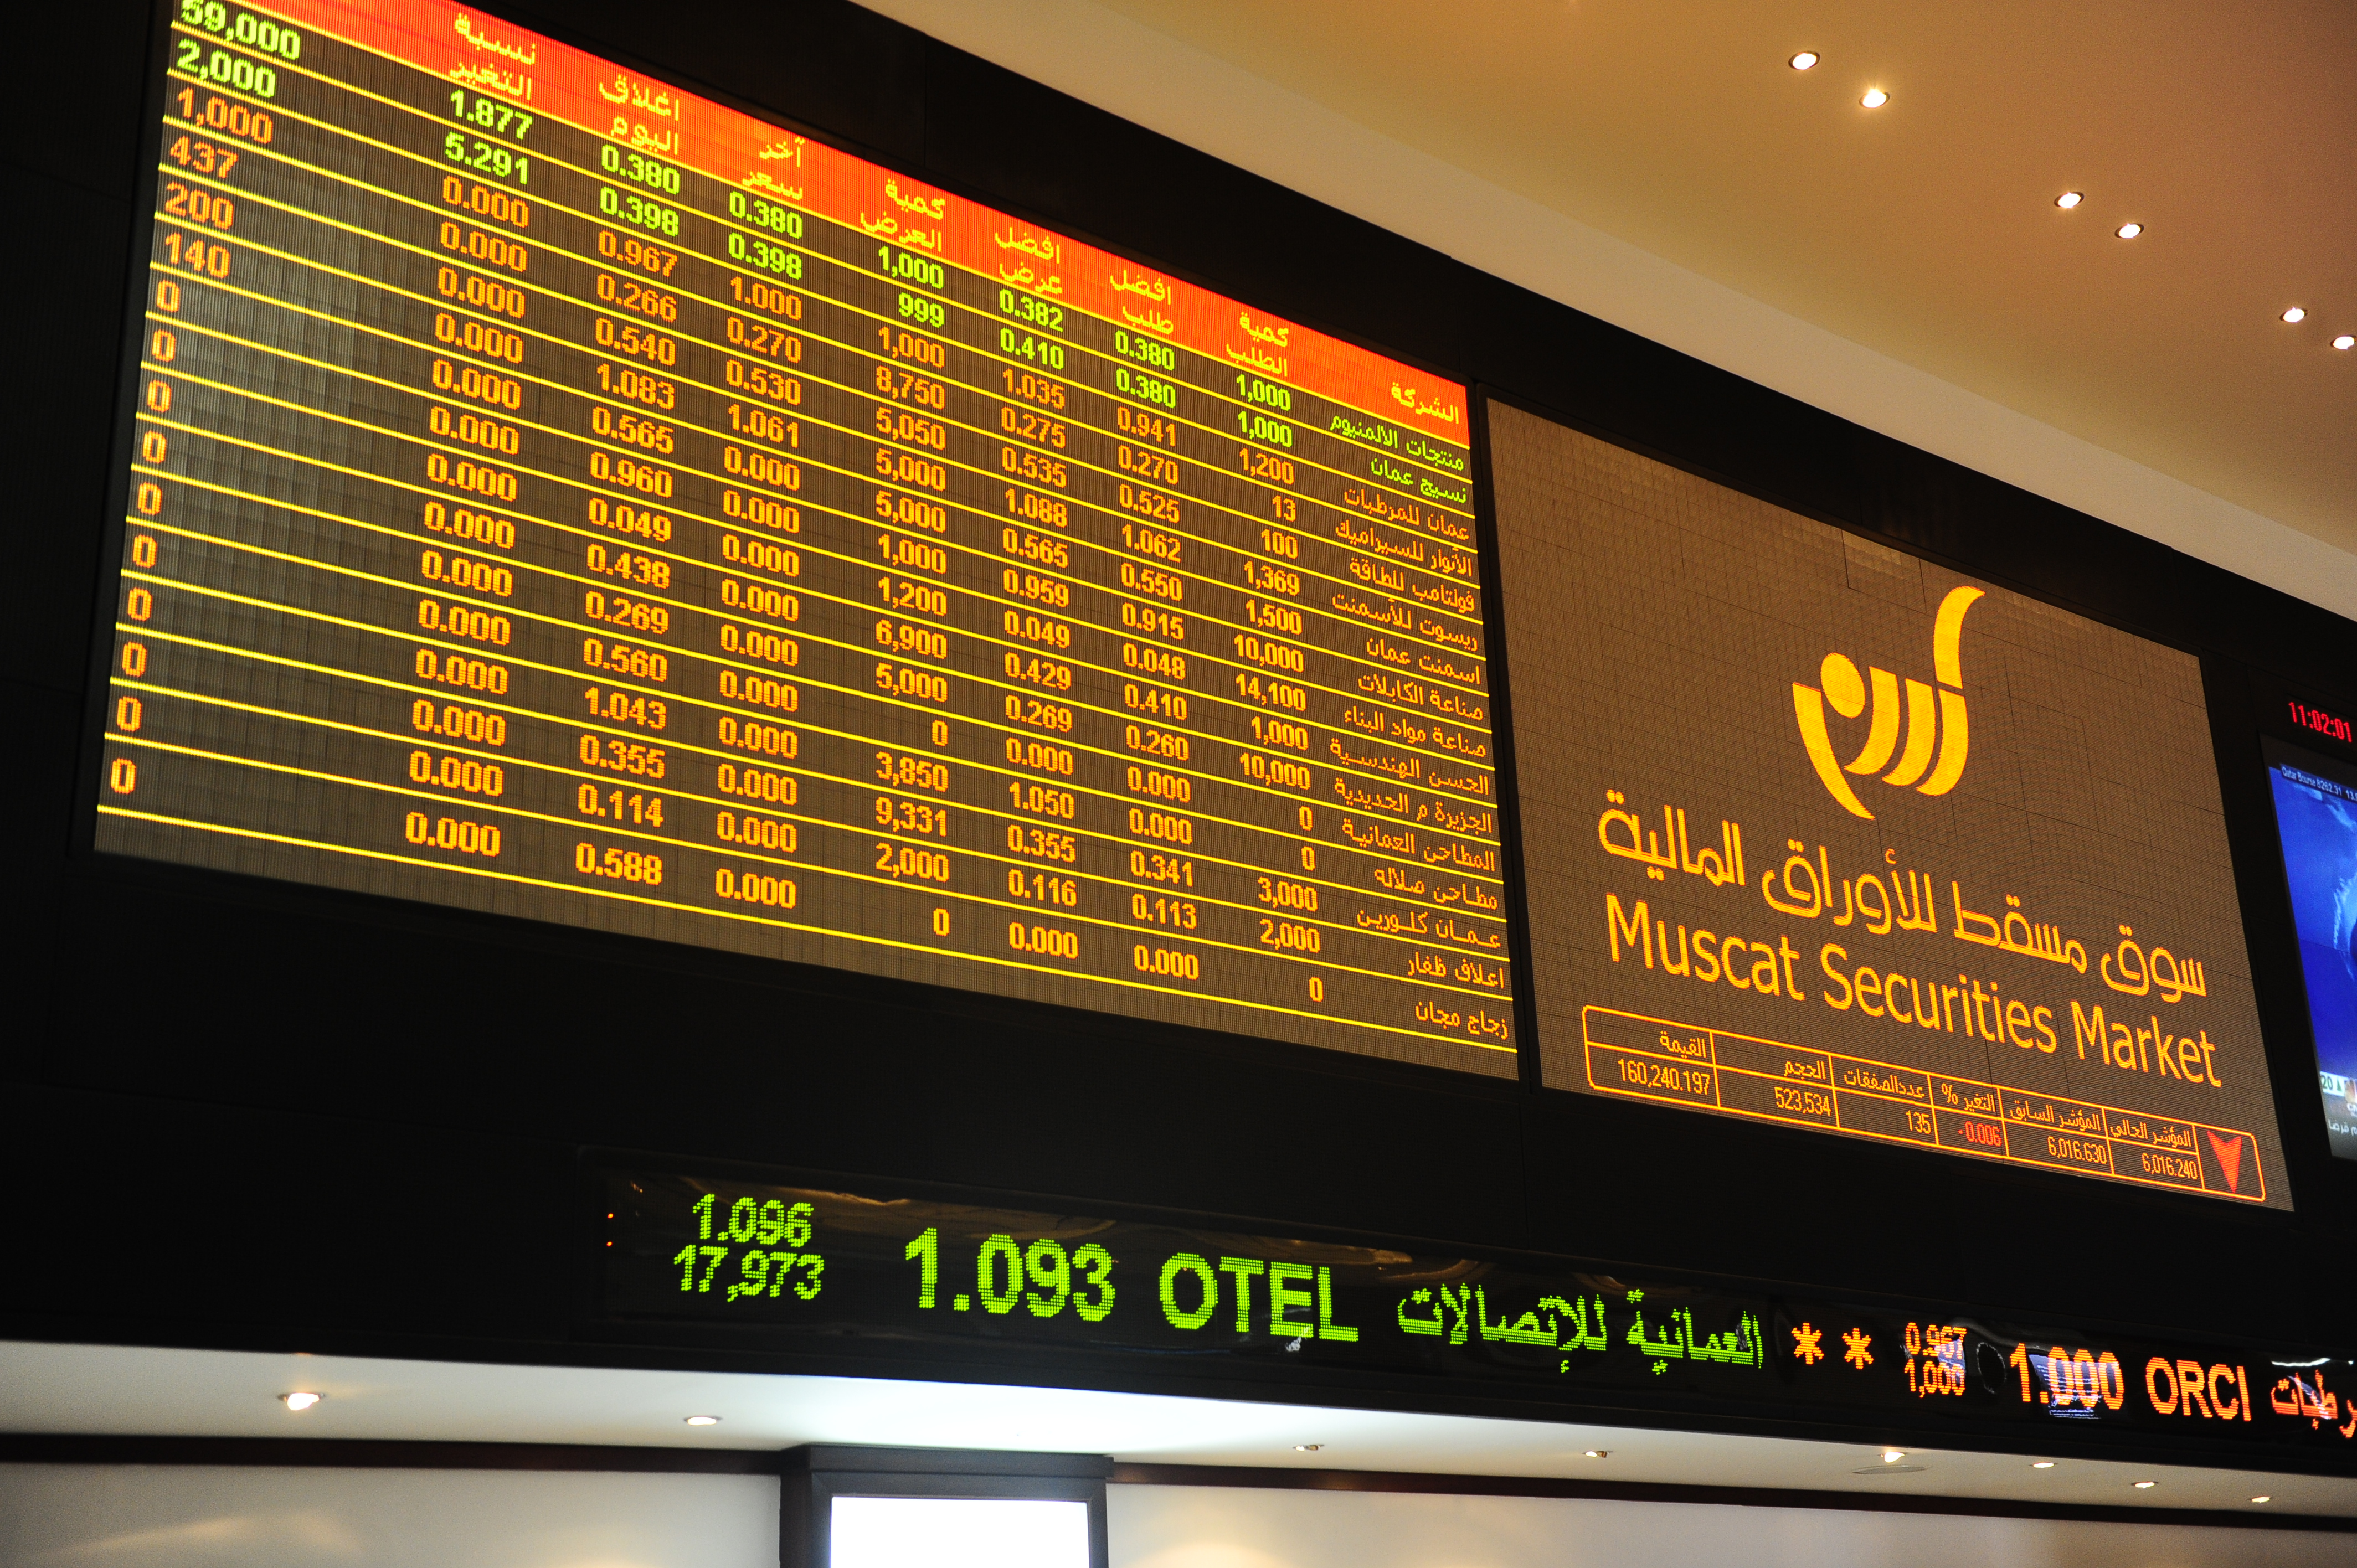 Muscat shares retreat on dull trading